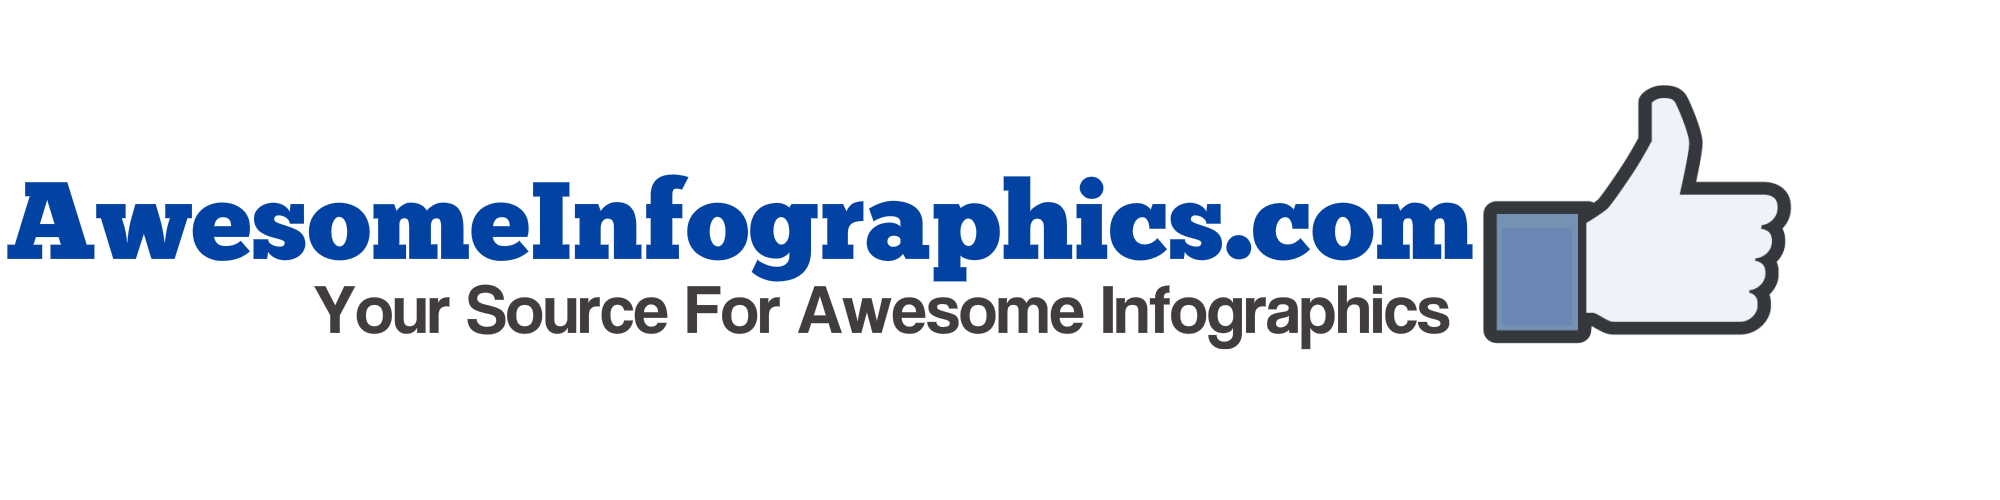 AwesomeInfographics.com